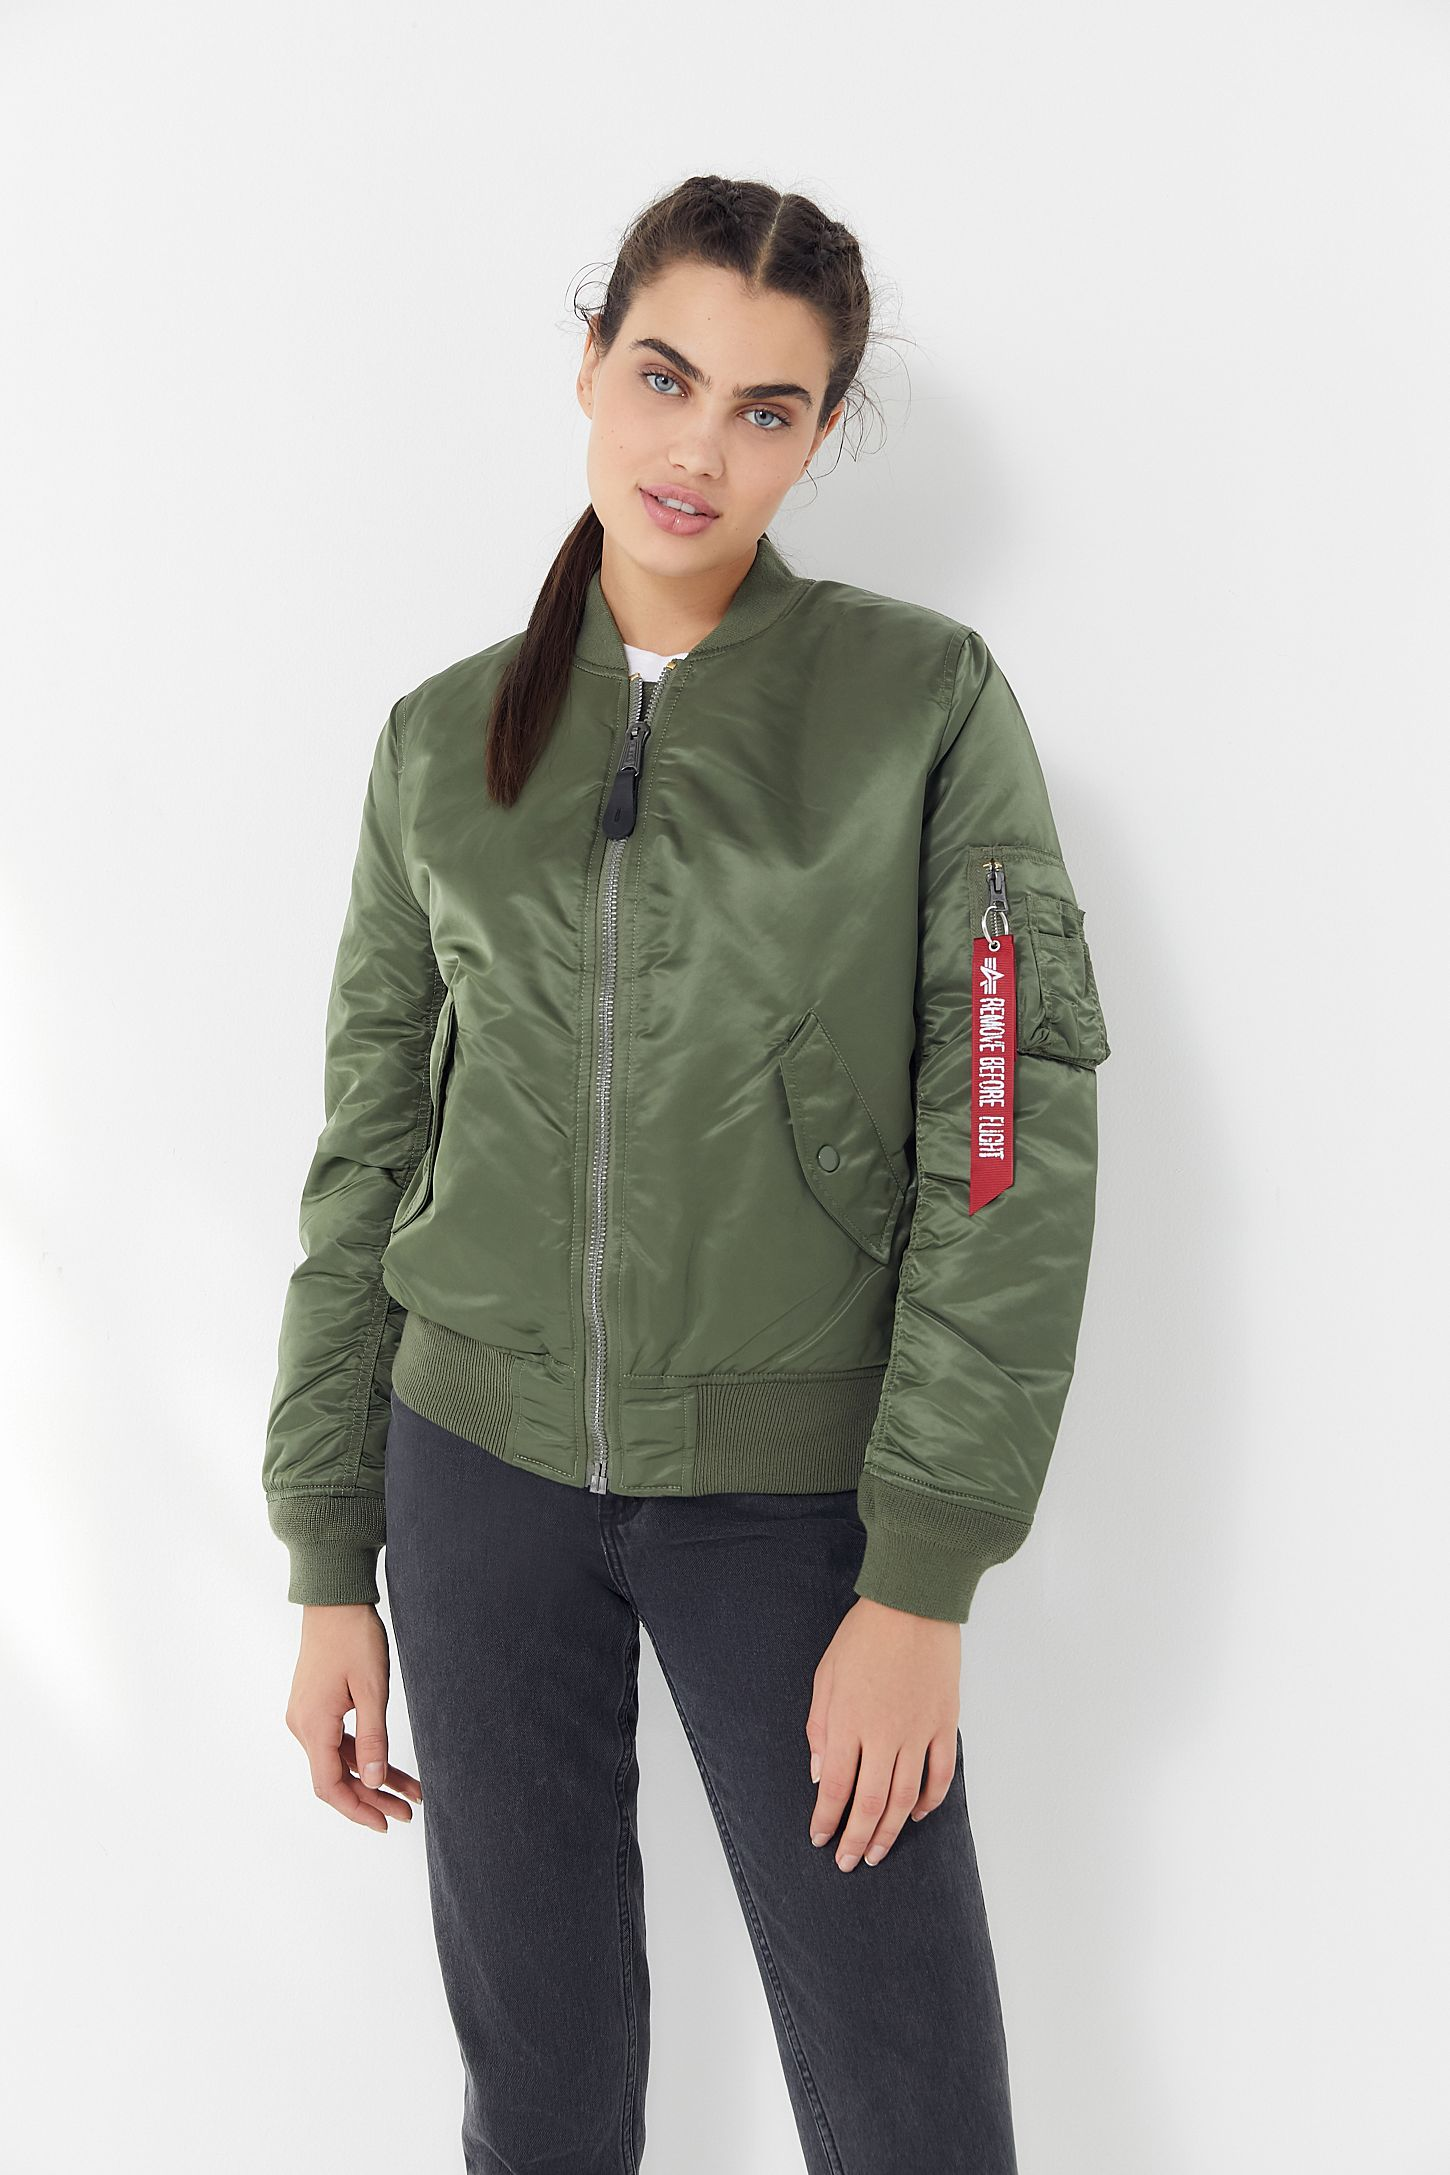 Slide View  6  Alpha Industries MA-1 Bomber Jacket 2917592d96e